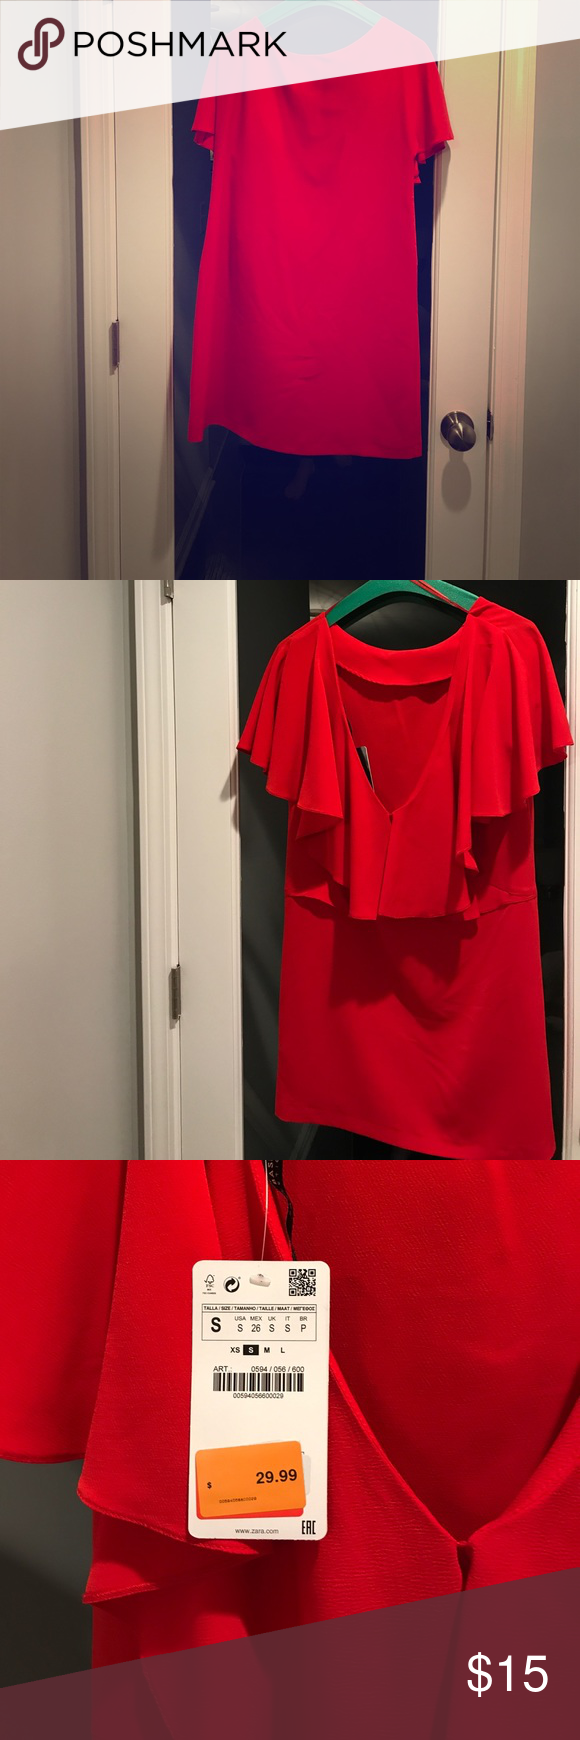 ede54f2c8bc Zara red open back dress NWT